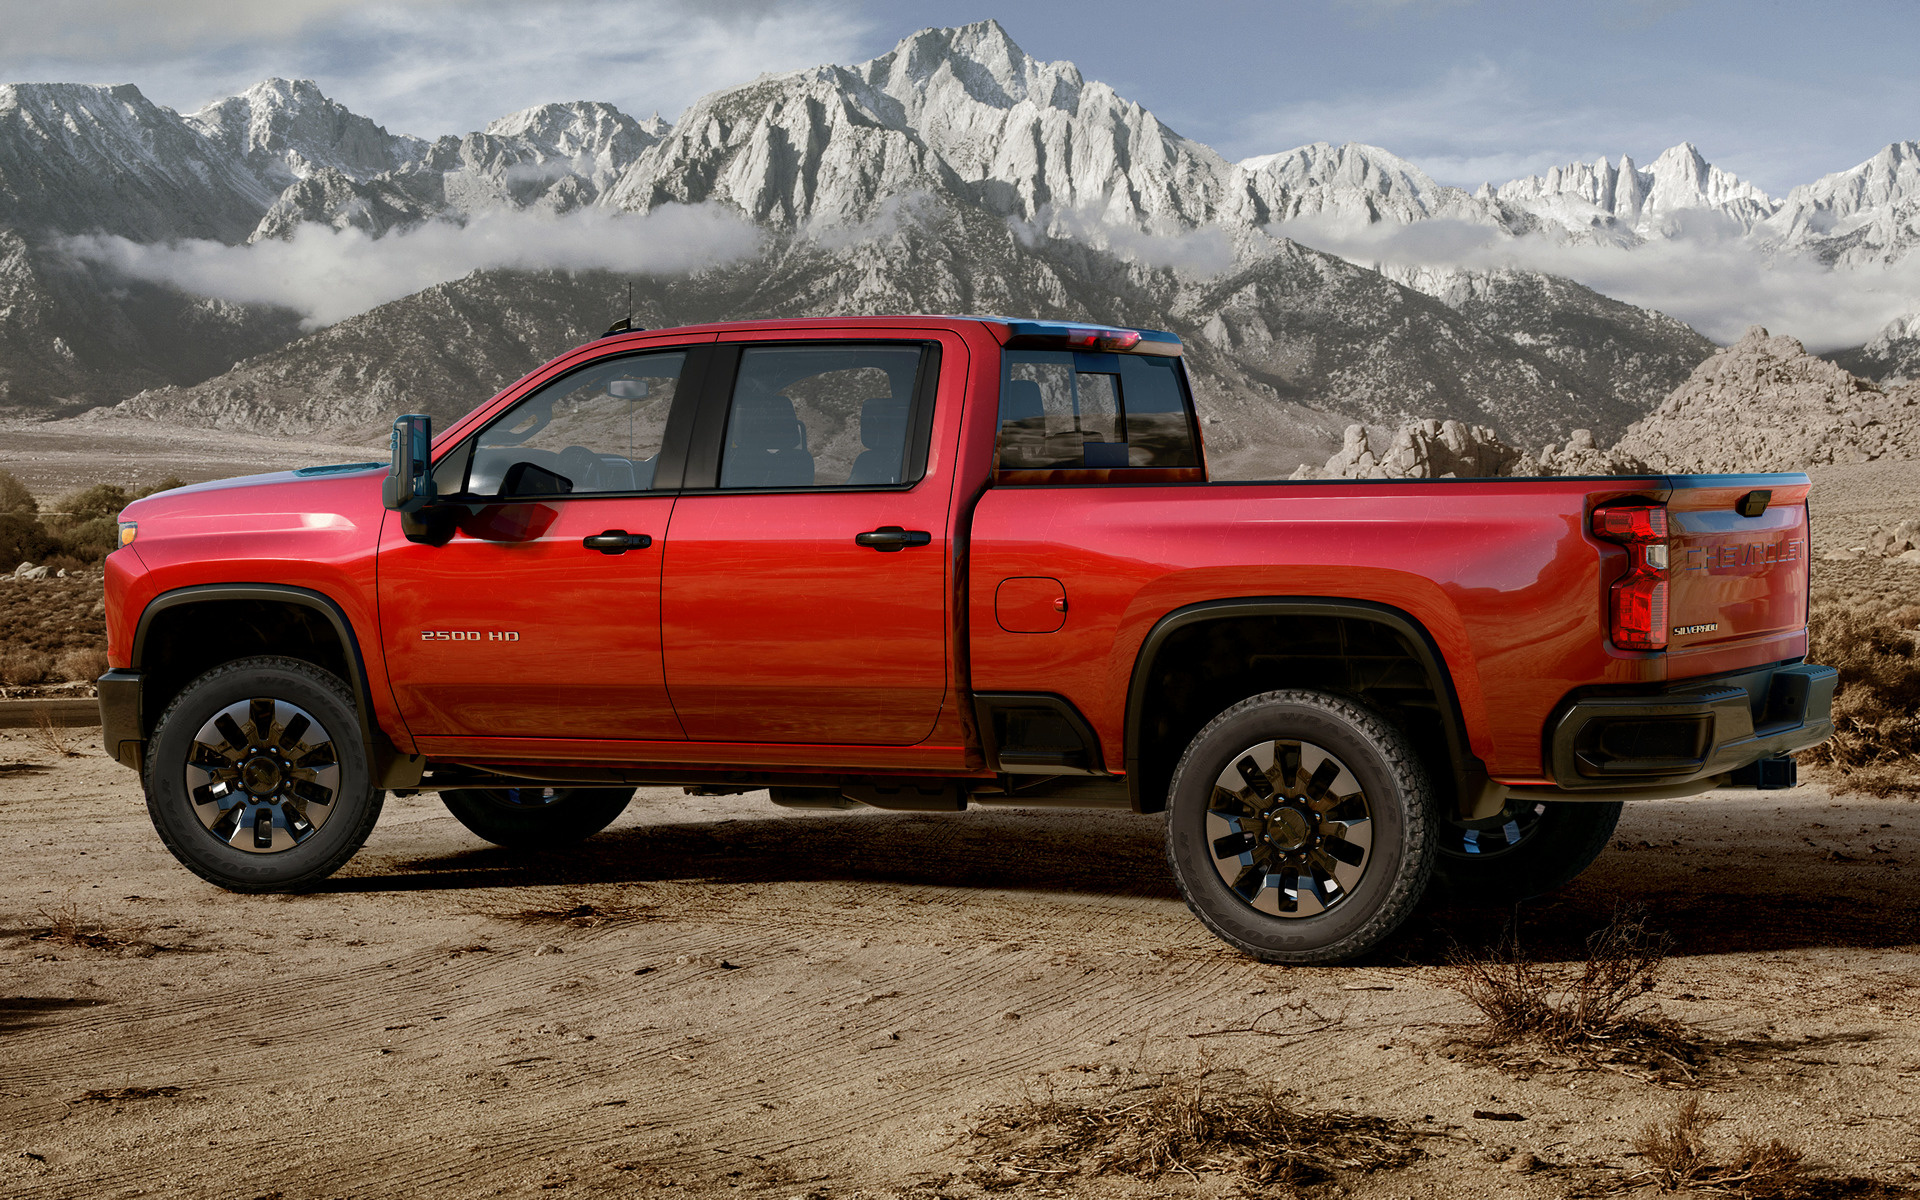 2020 Chevrolet Silverado 2500 HD Custom Crew Cab - Wallpapers and HD Images | Car Pixel